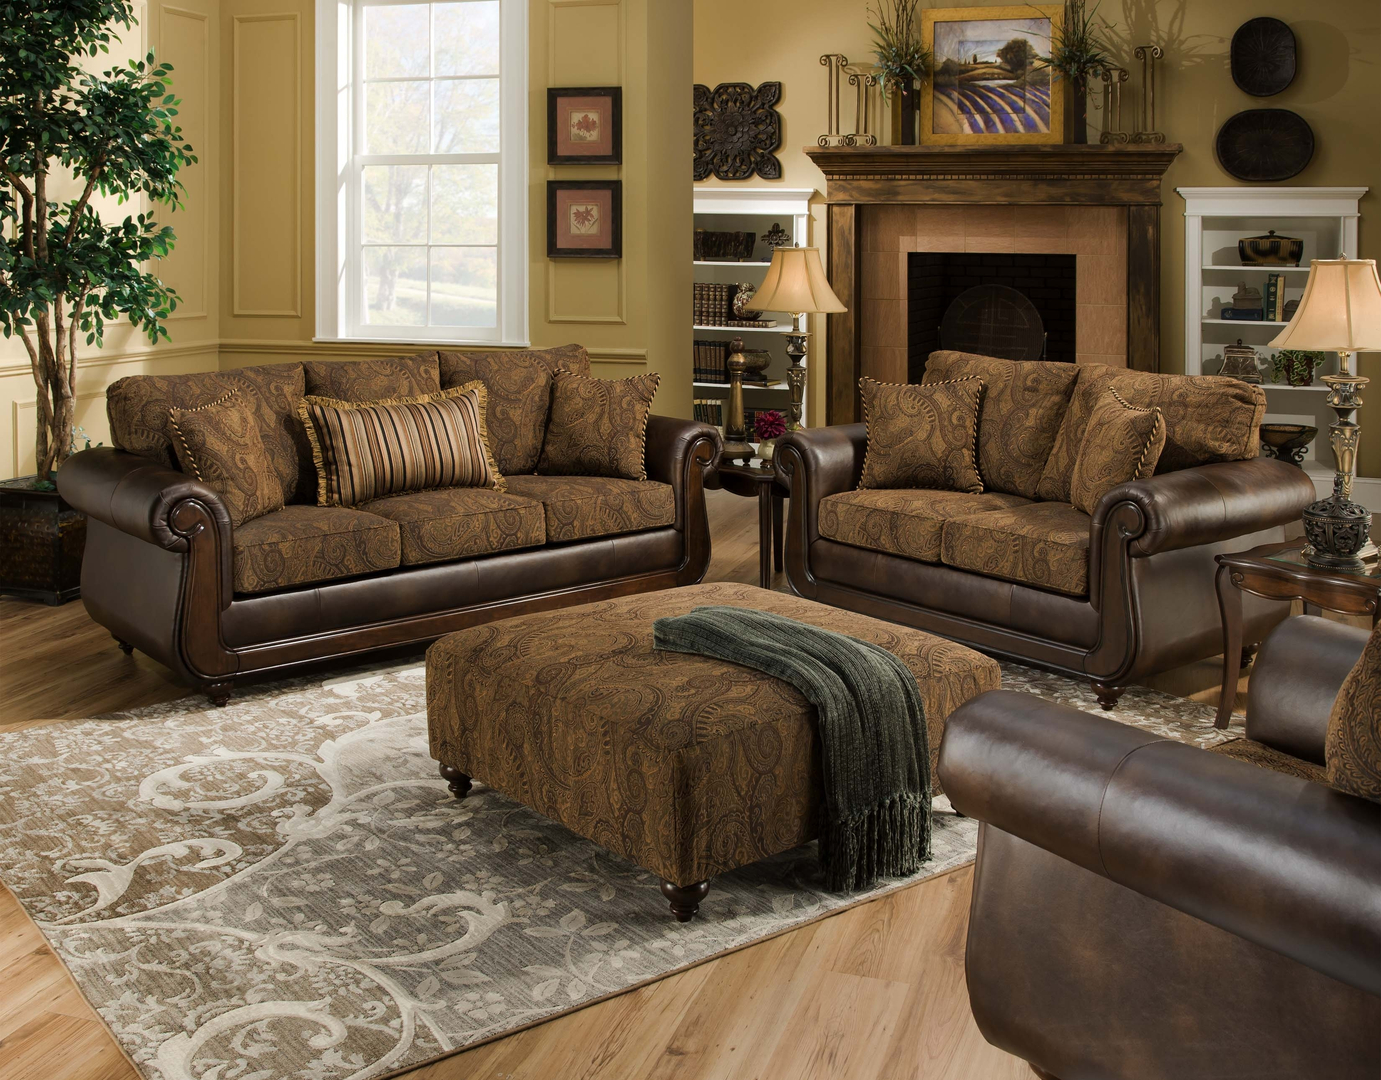 Whether you need a sofa loveseat sectional reclining sofas leather living room set microfiber living room set